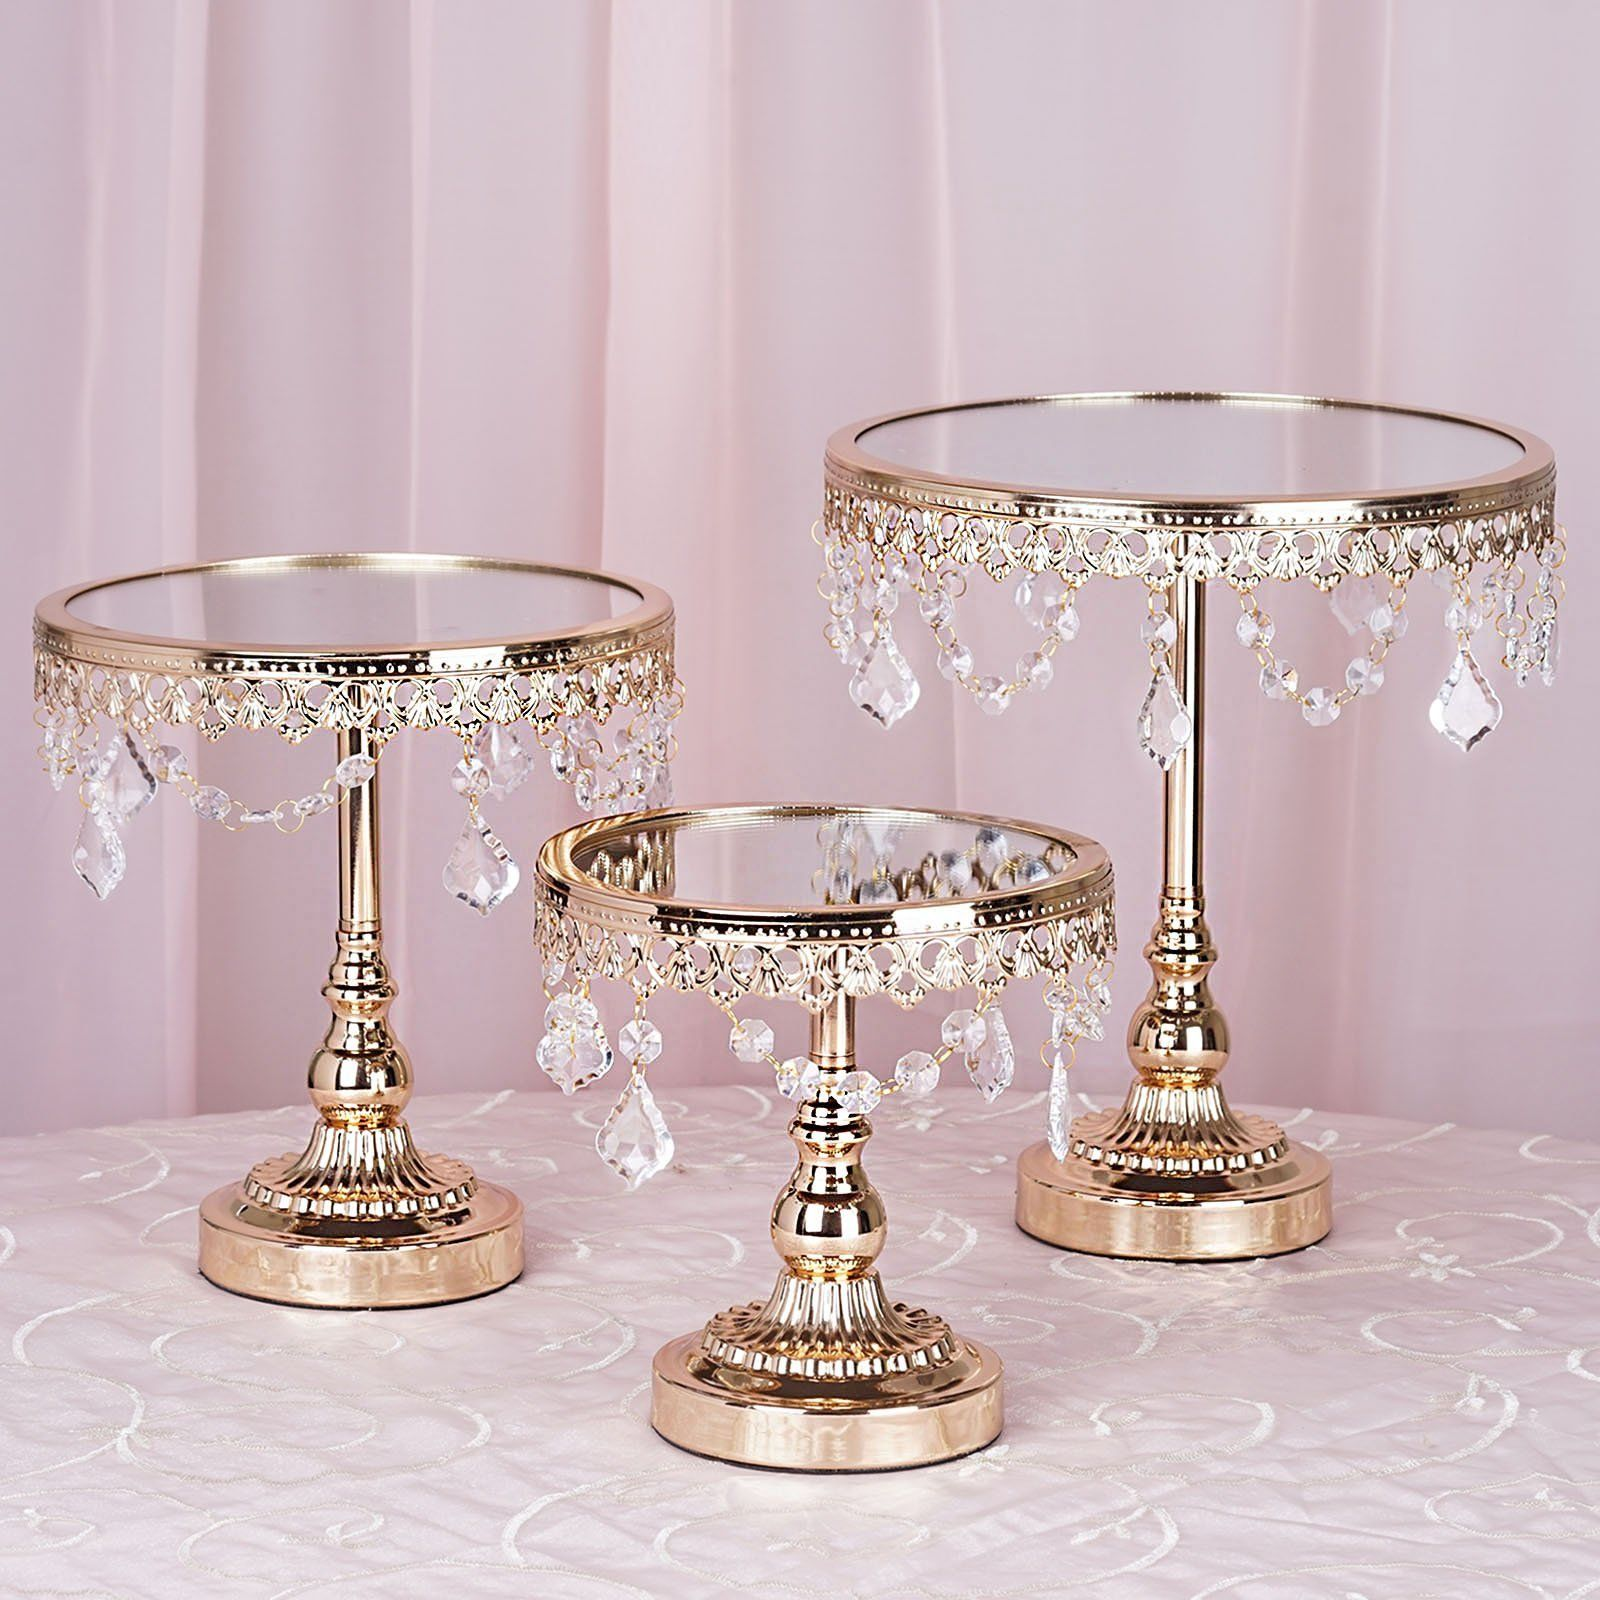 Set Of 3 Gold Round Wedding Cake Stand Centerpiece Risers With Mirror Top Tabletop Decoration Metal Cake Stand Crystal Cake Stand Cake Stand Centerpiece